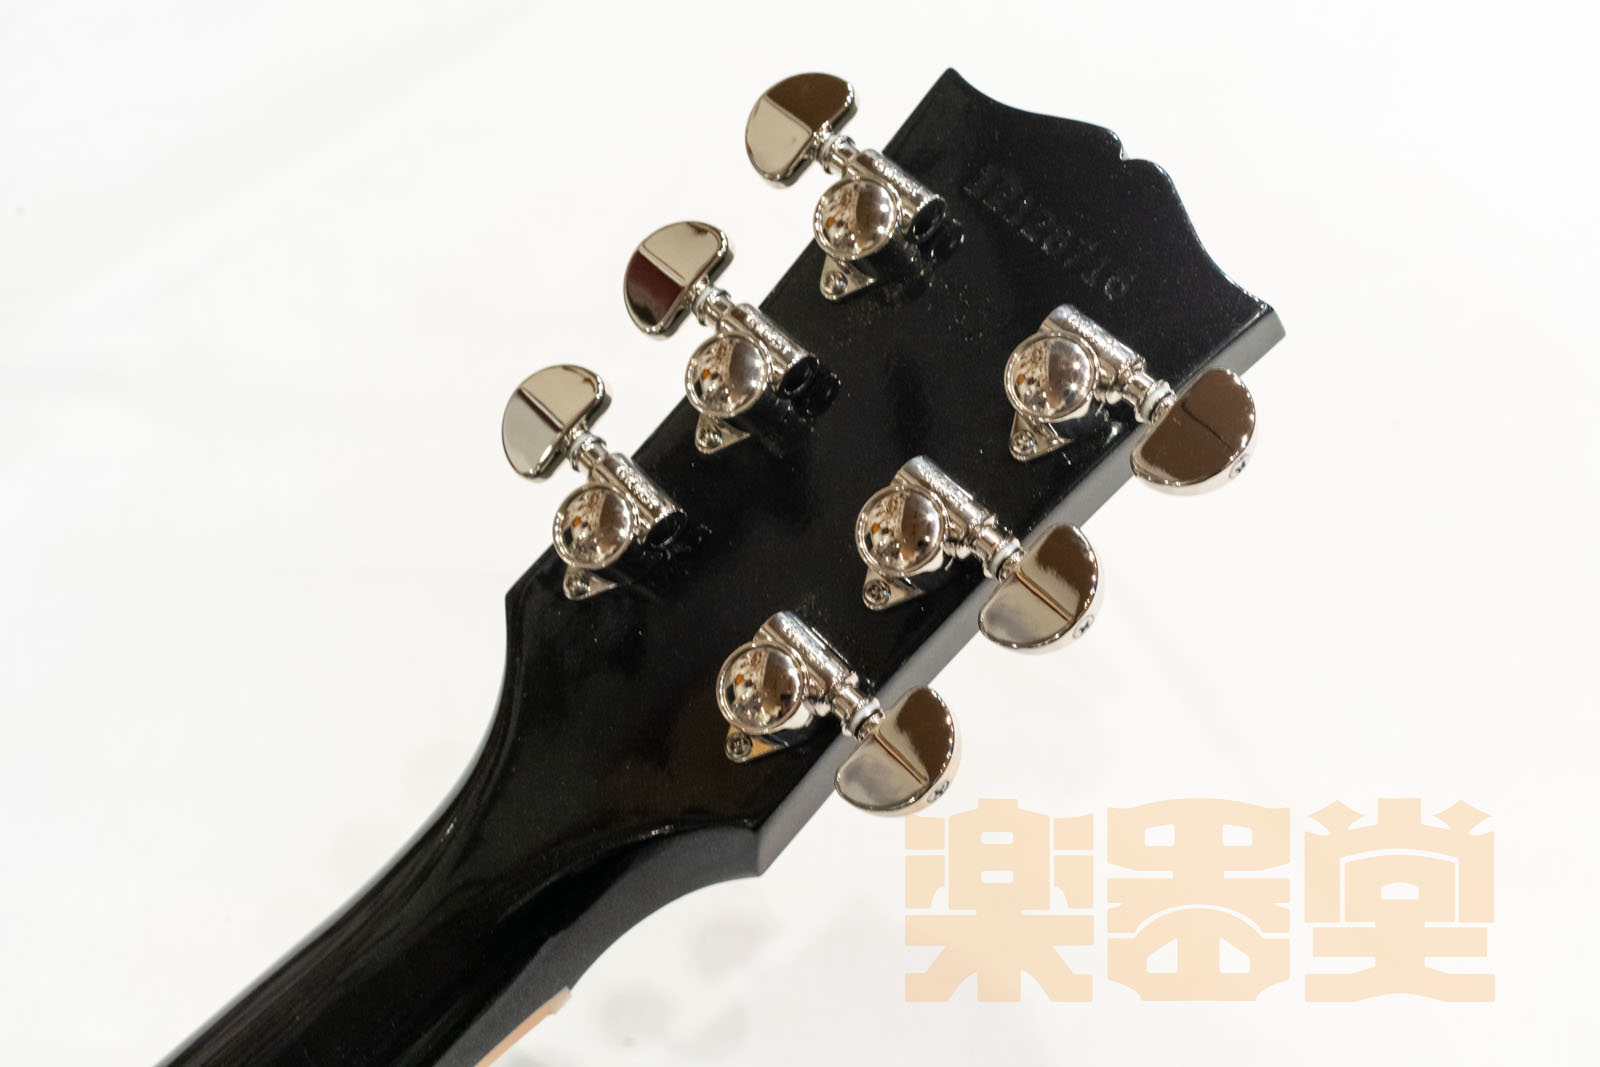 gibson-es-335-dot-graphite-metalic